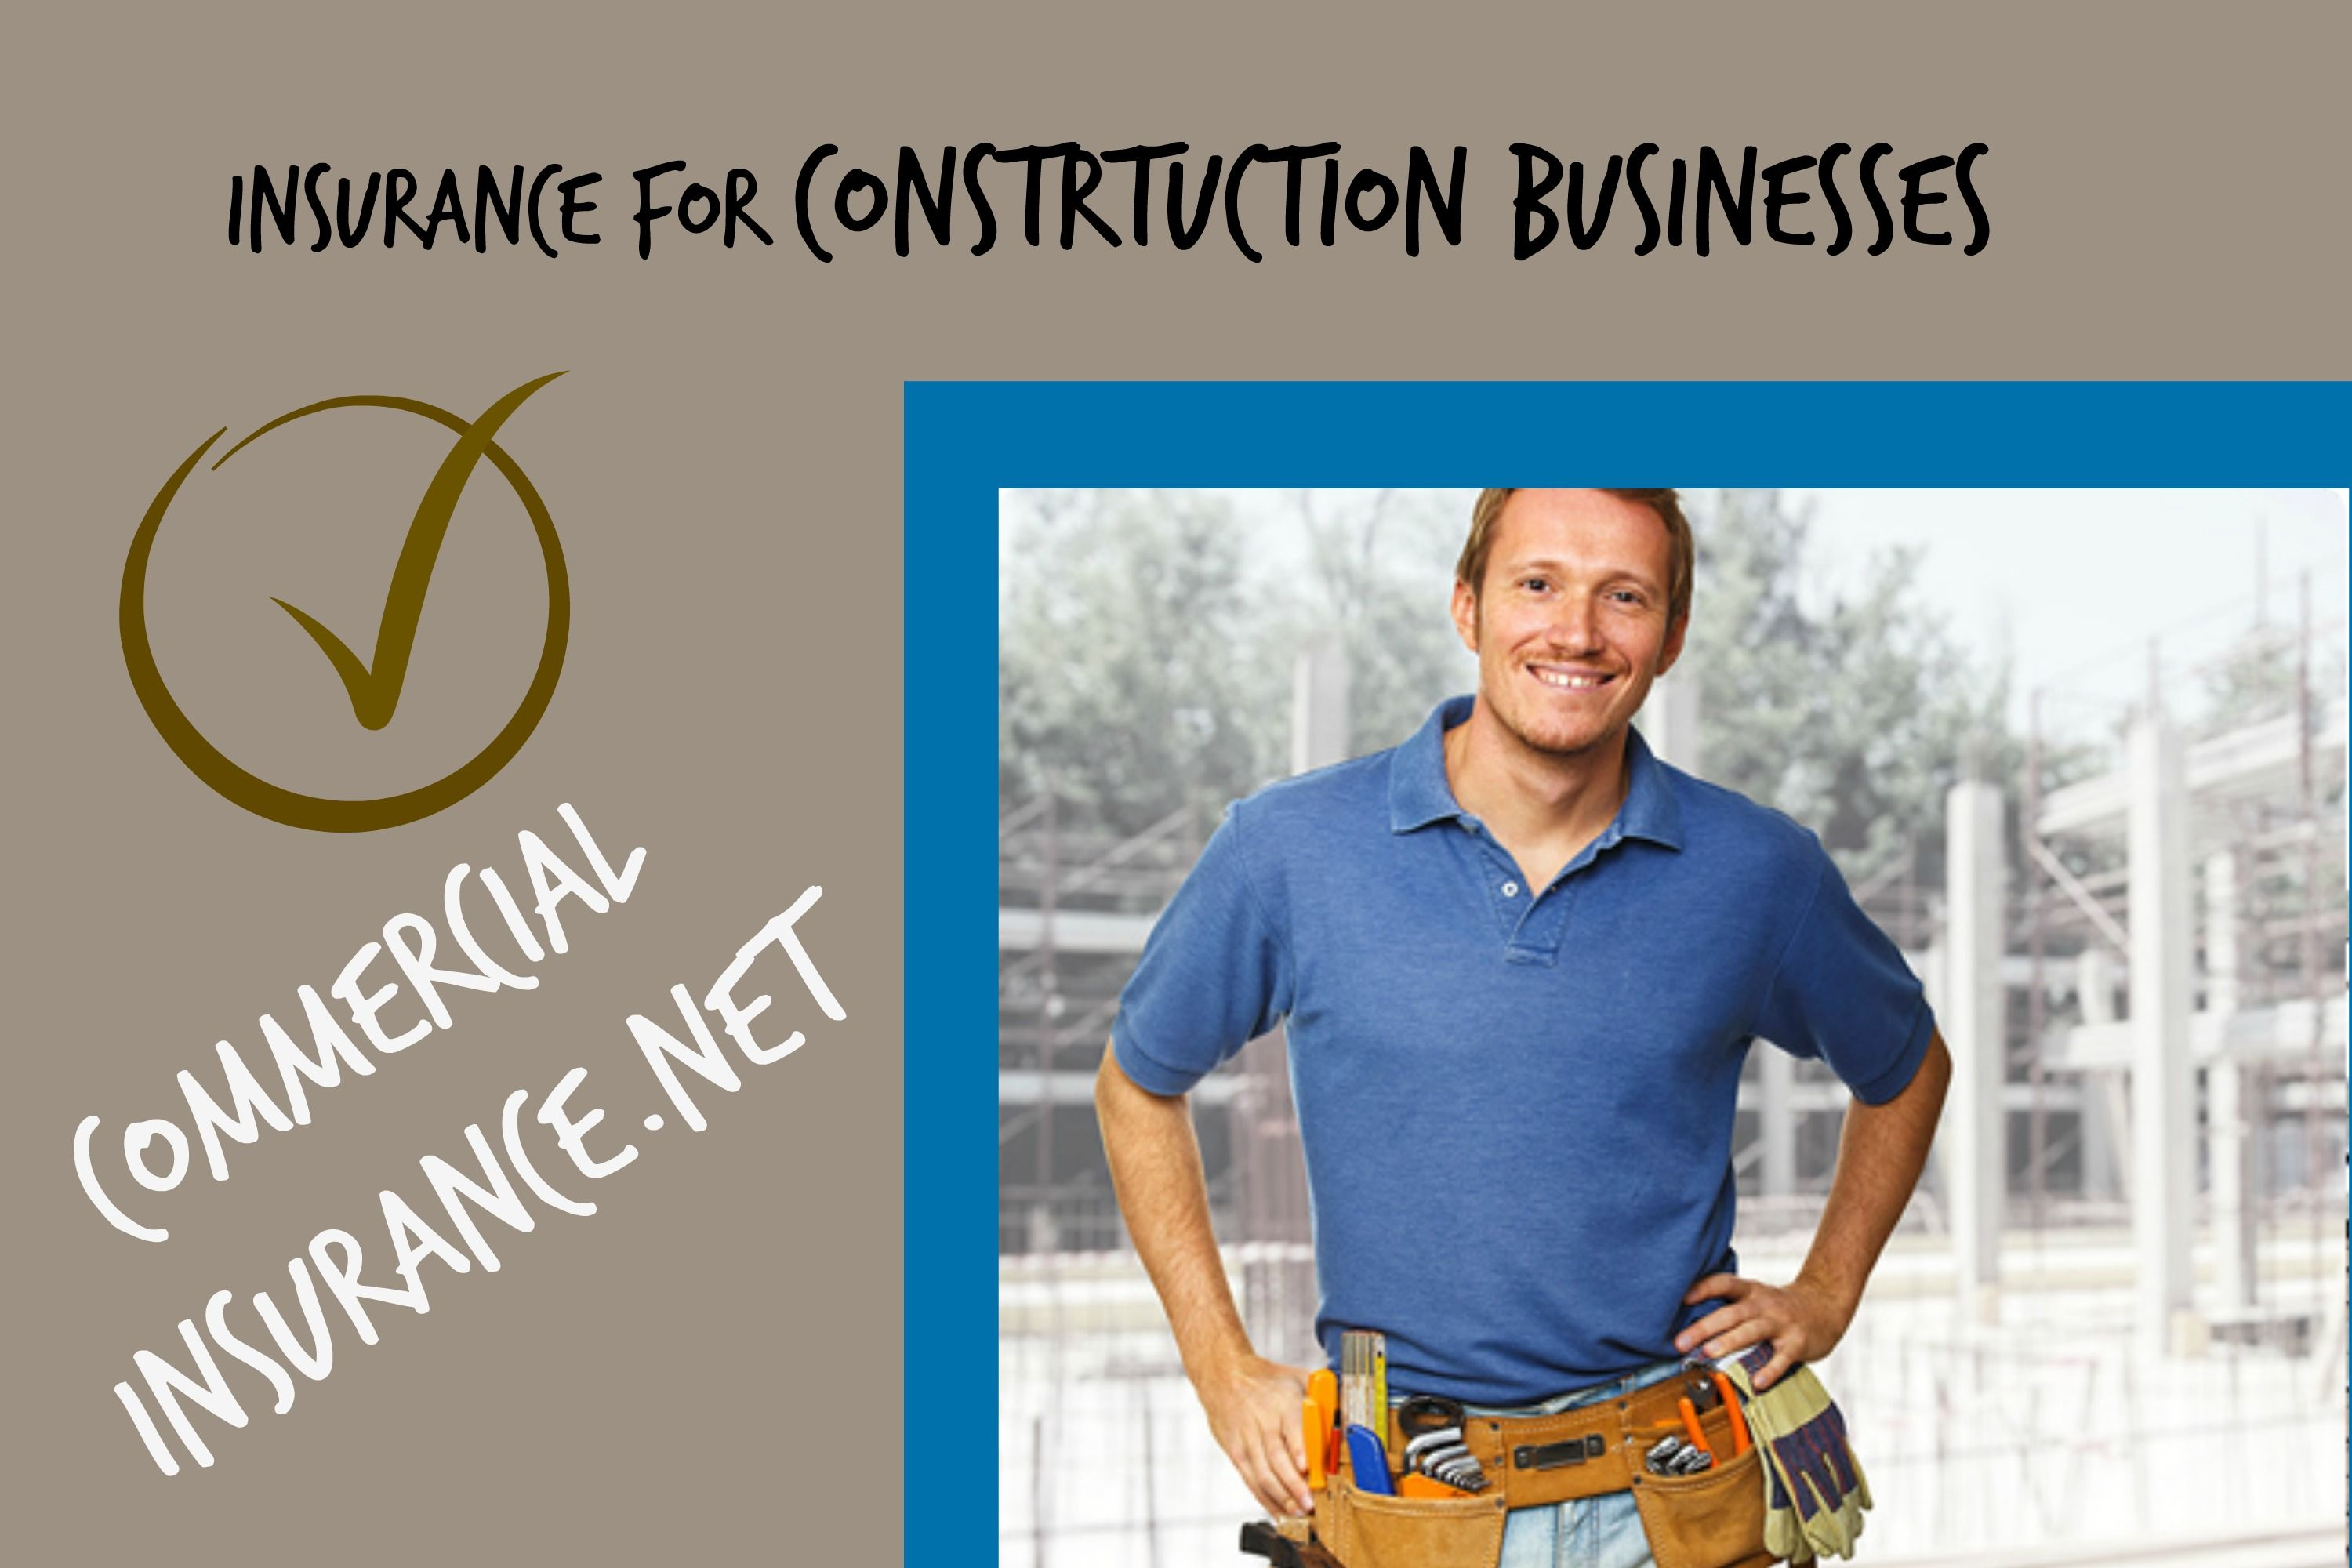 Insurance For Your Construction Business At Commercialinsurance